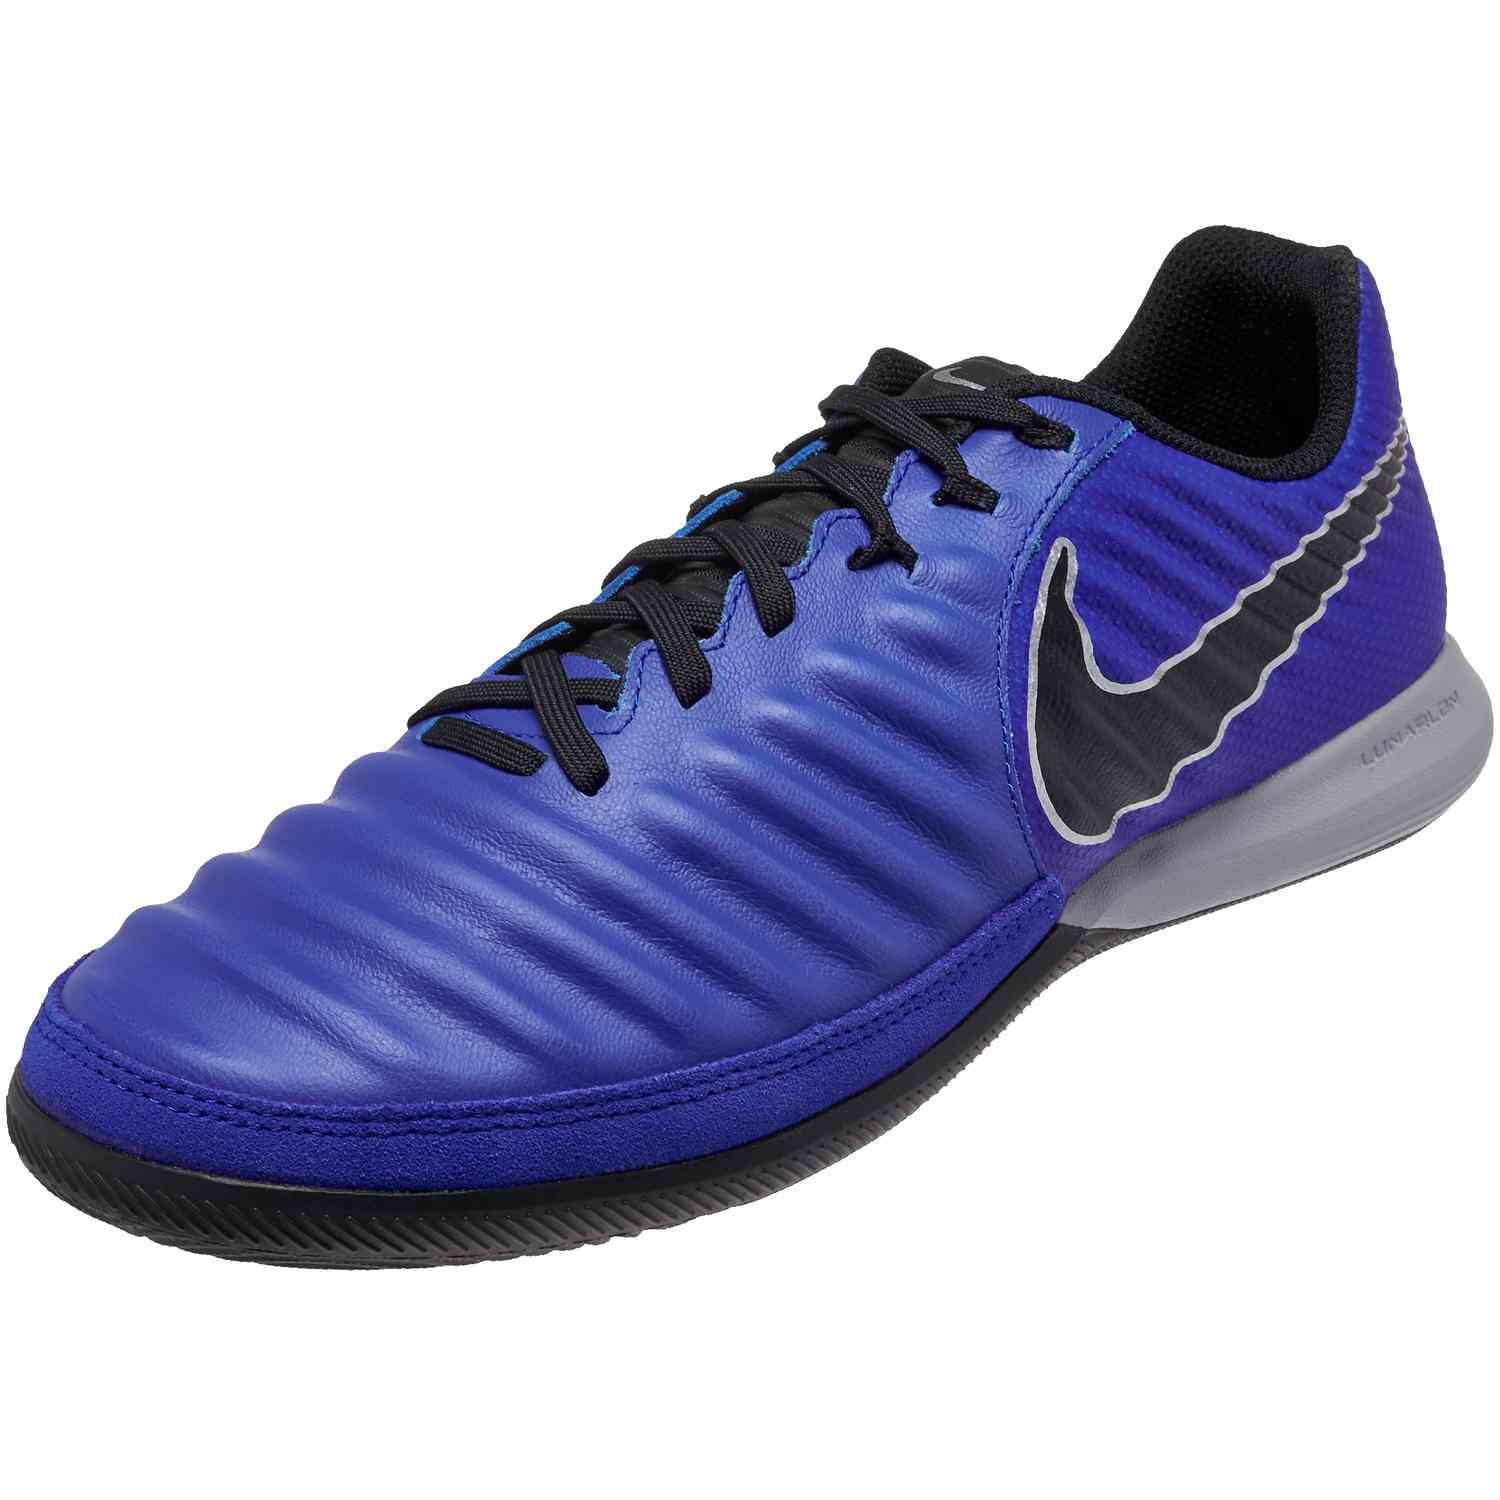 d58252646 Nike Tiempo LegendX Pro 7 IC - Always Forward Chapter 1 - SoccerPro